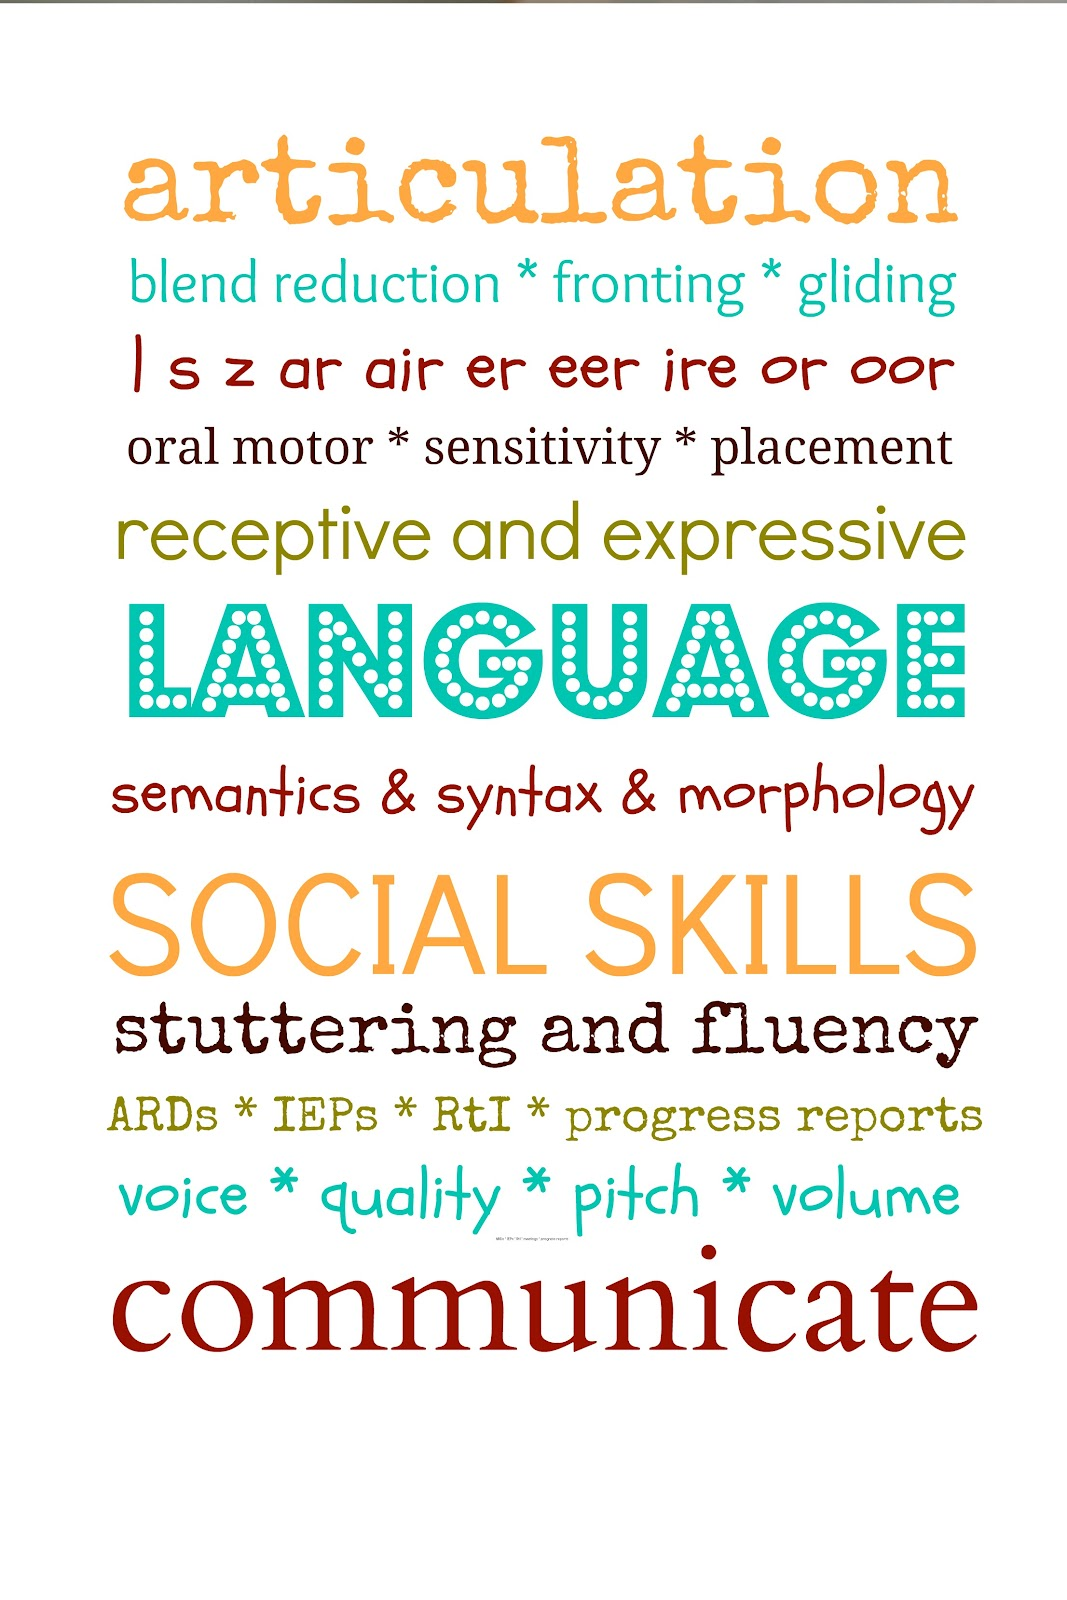 speech language pathology coursework Return to: college of arts and sciences the department offers the bachelor of  arts degree with a major in speech-language pathology/audiology.